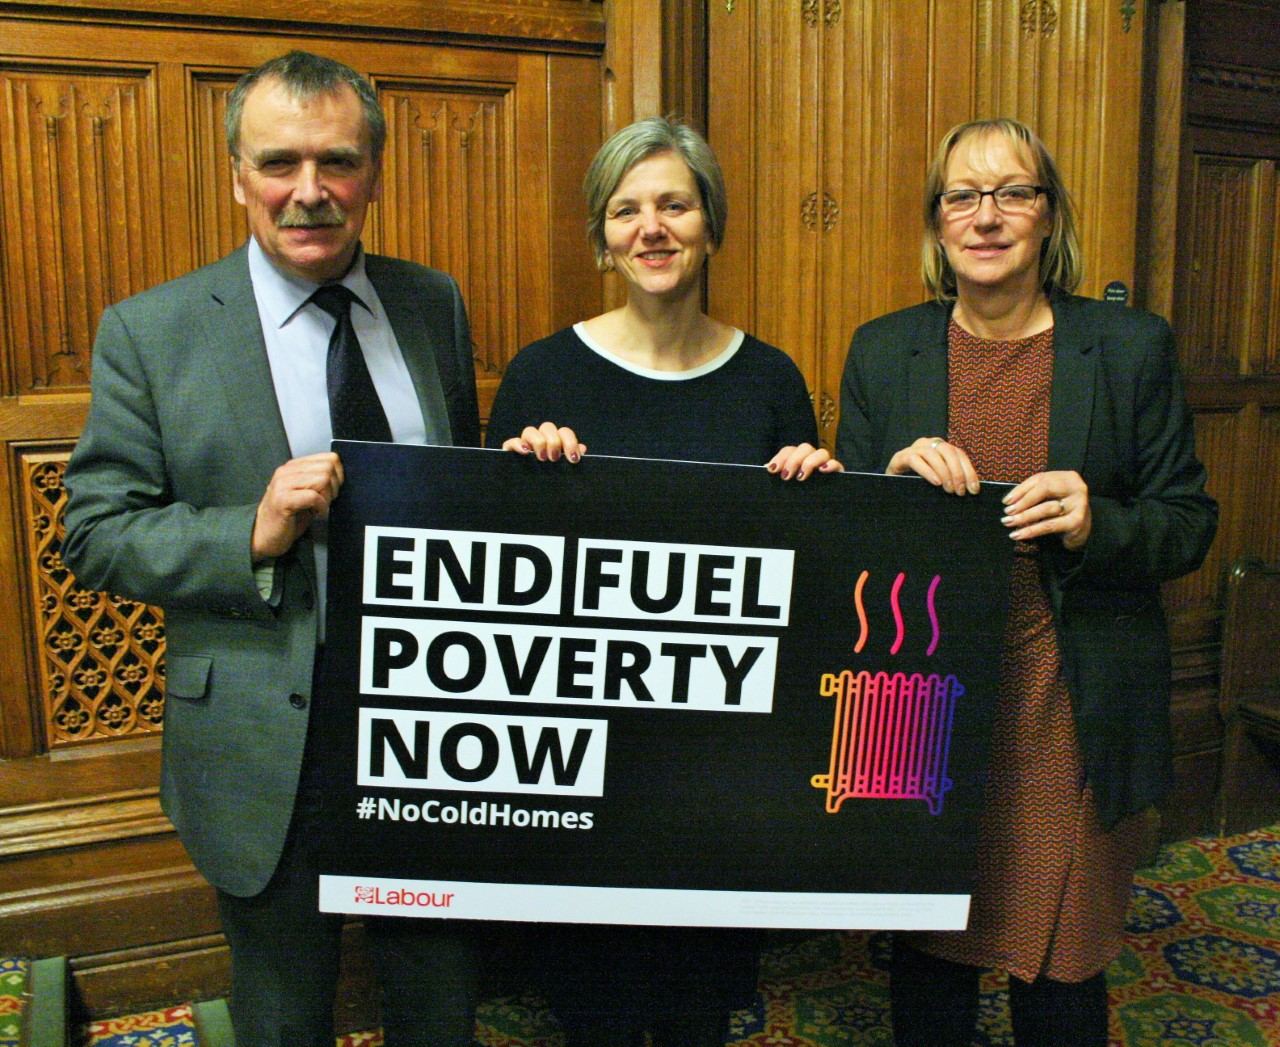 End_fuel_poverty.jpg